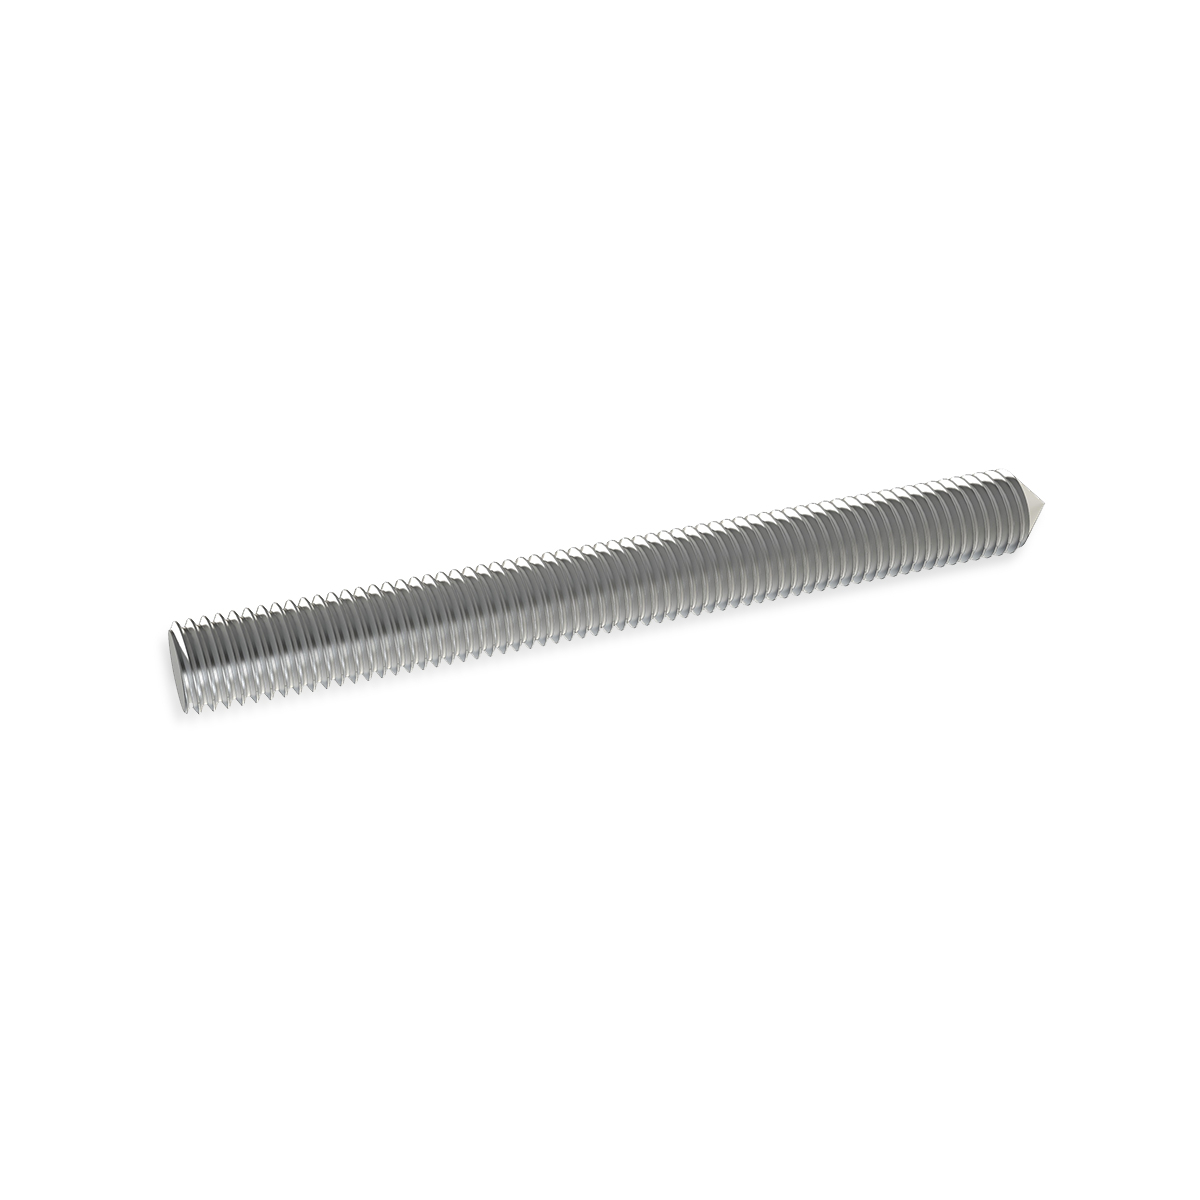 1/4'' Diameter X 6'' Long, Aluminum 1/4-20 Threaded Stud (1 End Flat - 1 End Conical)